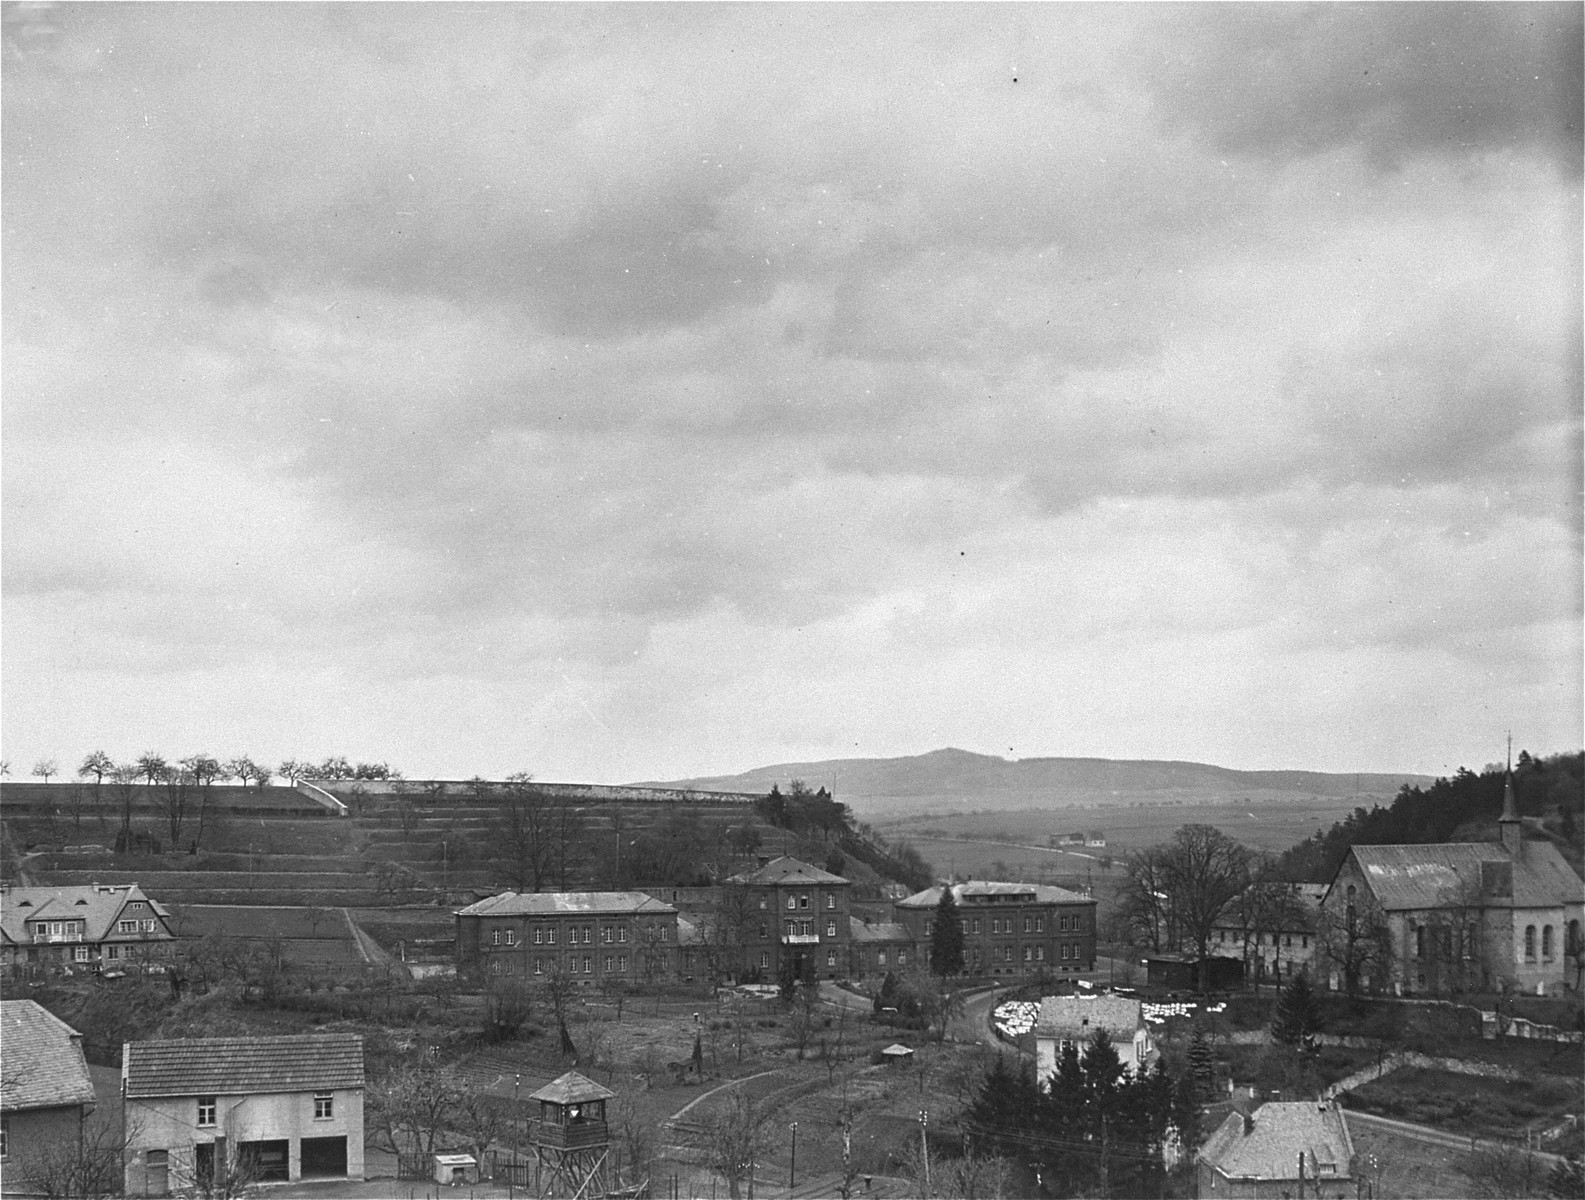 View of the Hadamar Institute.   The photograph was taken by an American military photographer soon after the liberation.